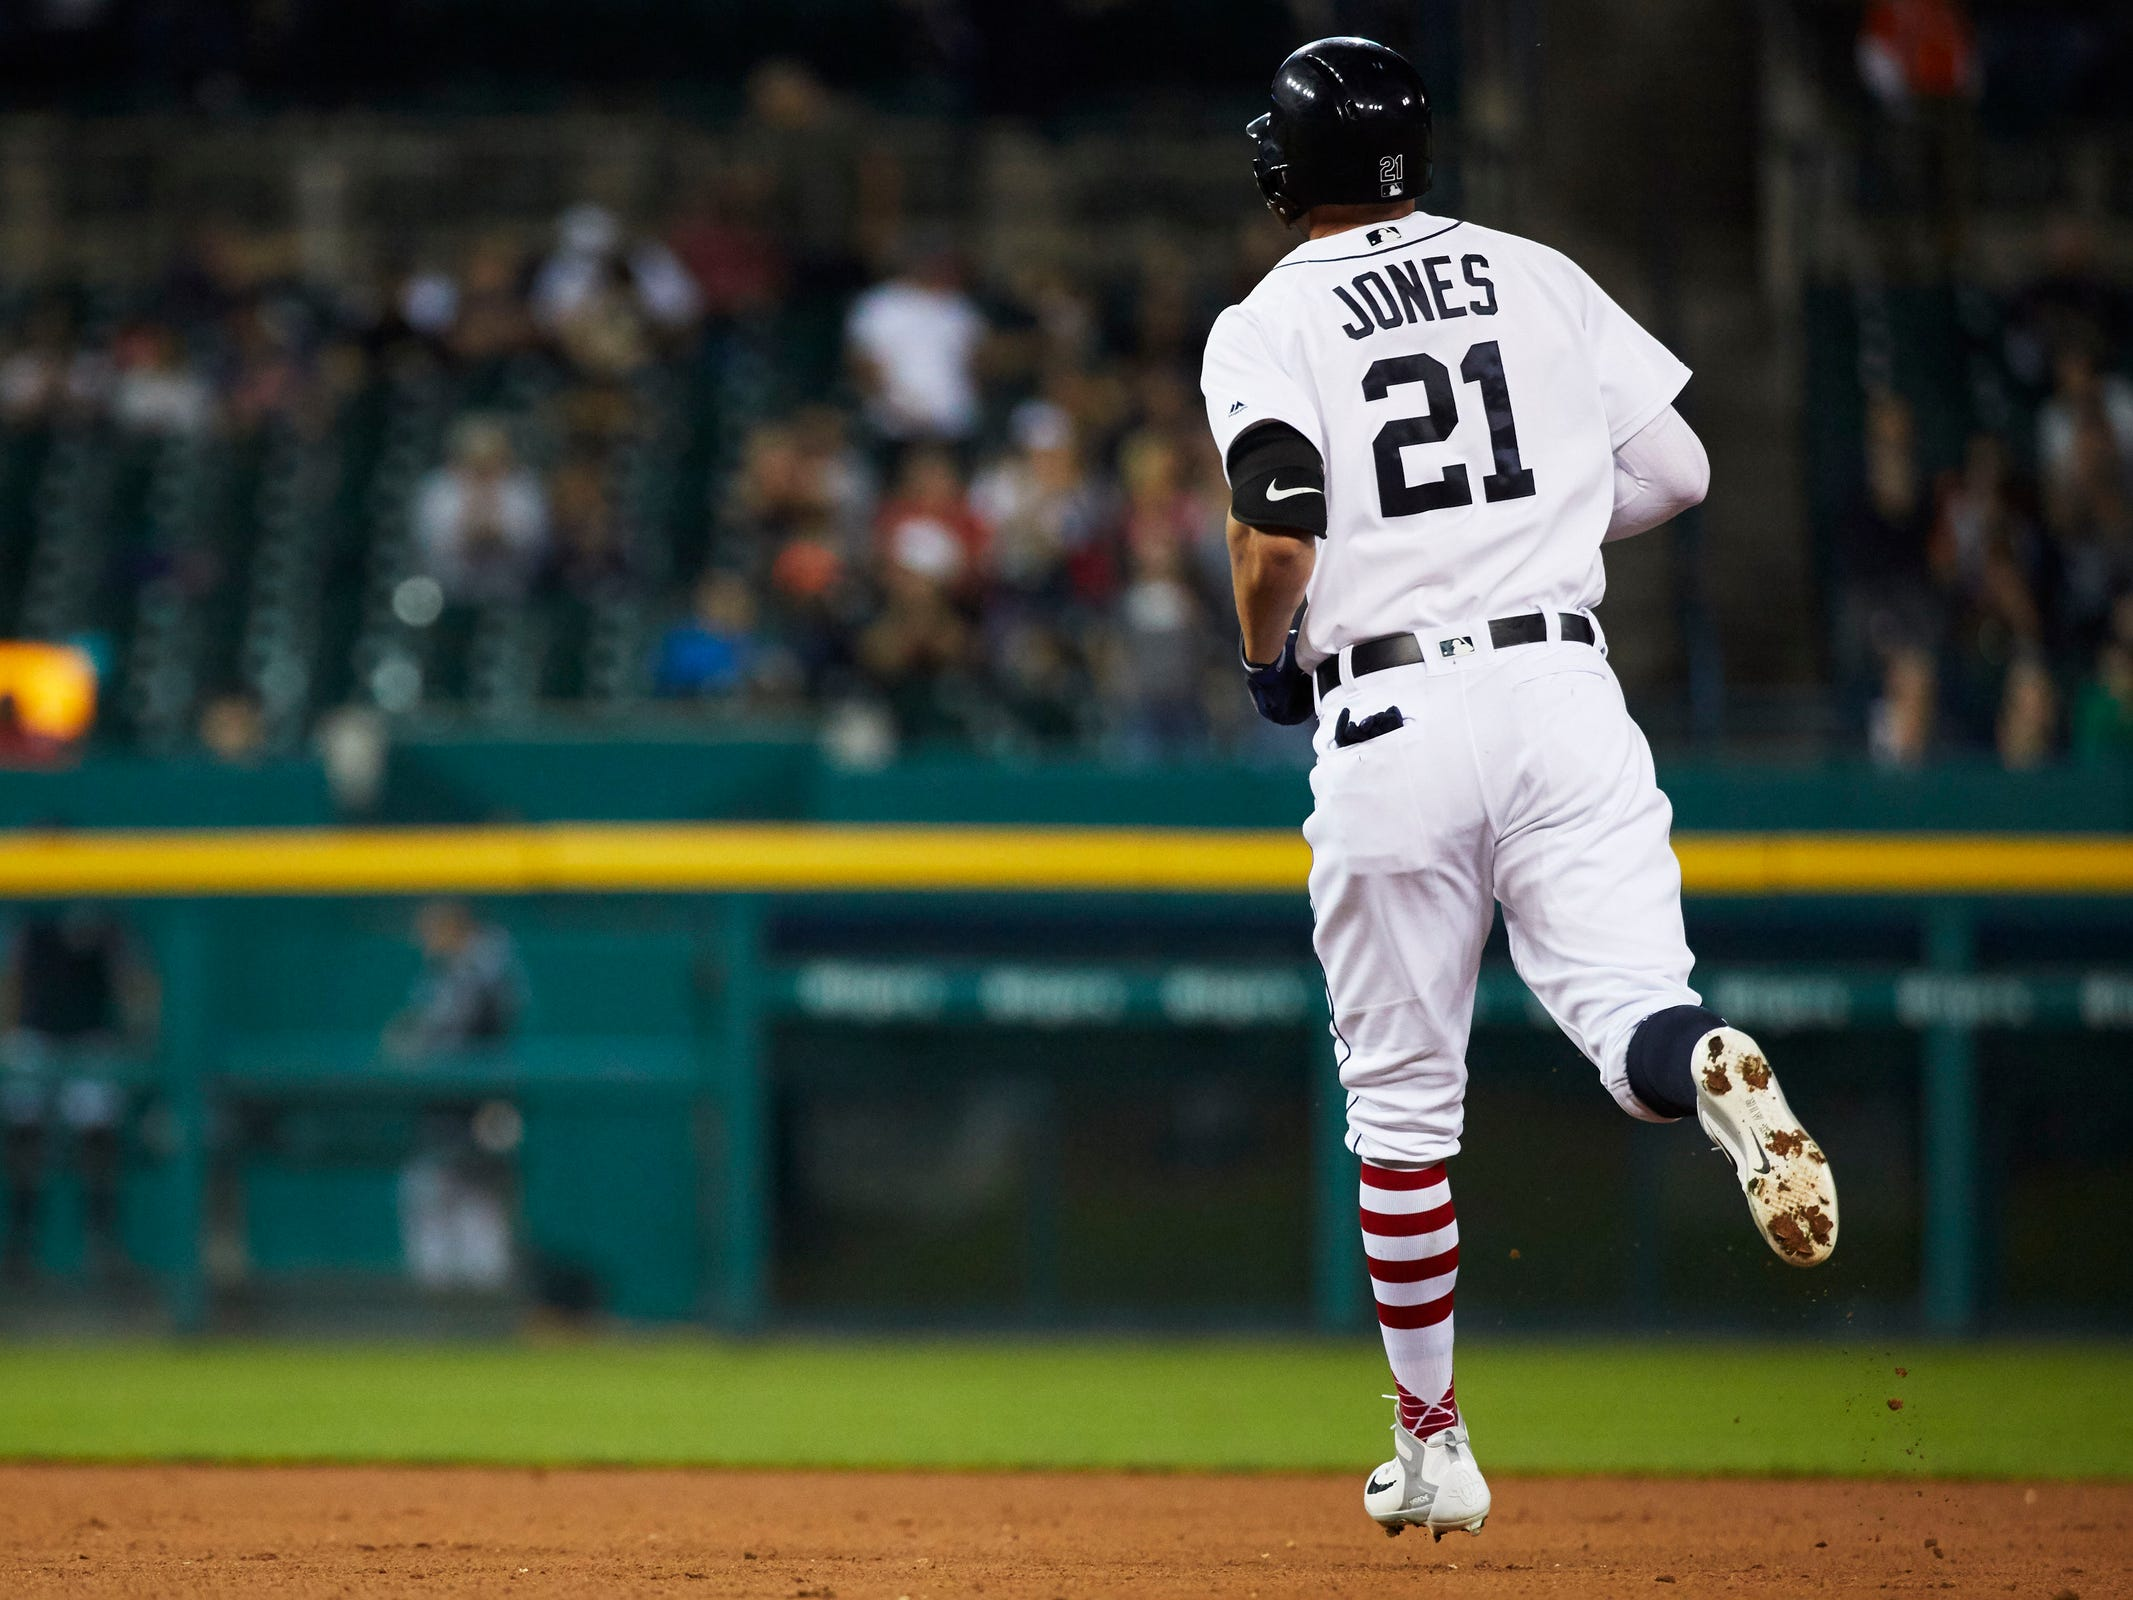 Detroit Tigers center fielder JaCoby Jones (21) runs the bases after he hits a three run home run in the fourth inning against the Houston Astros at Comerica Park, Tuesday, Sept. 11, 2018.